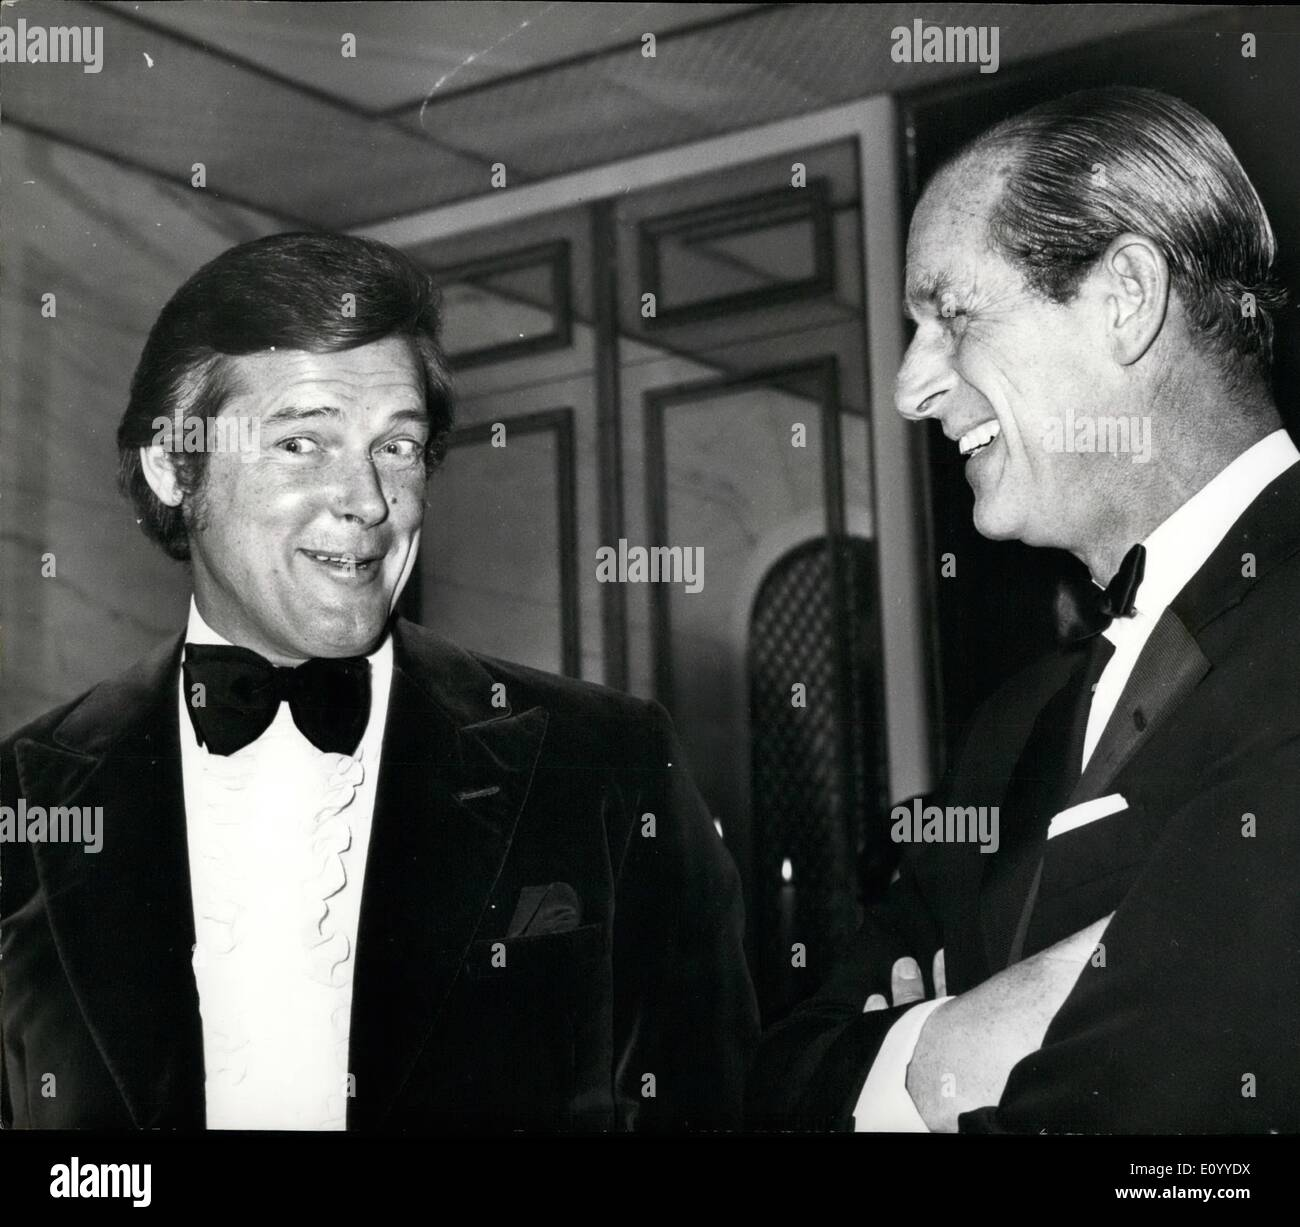 Nov. 11, 1971 - The Duke Of Edinburgh Meets The 'Saint'. Photo Shows British actor Roger Moore (left) star of the TV series ''The Saint'' shares a joke with the Duke of Edinburgh at the Savoy Hotel, London,in aide of the Variety Club of Great Britain's Fund for Handicapped Children an the Duke of Edinburgh Award. - Stock Image